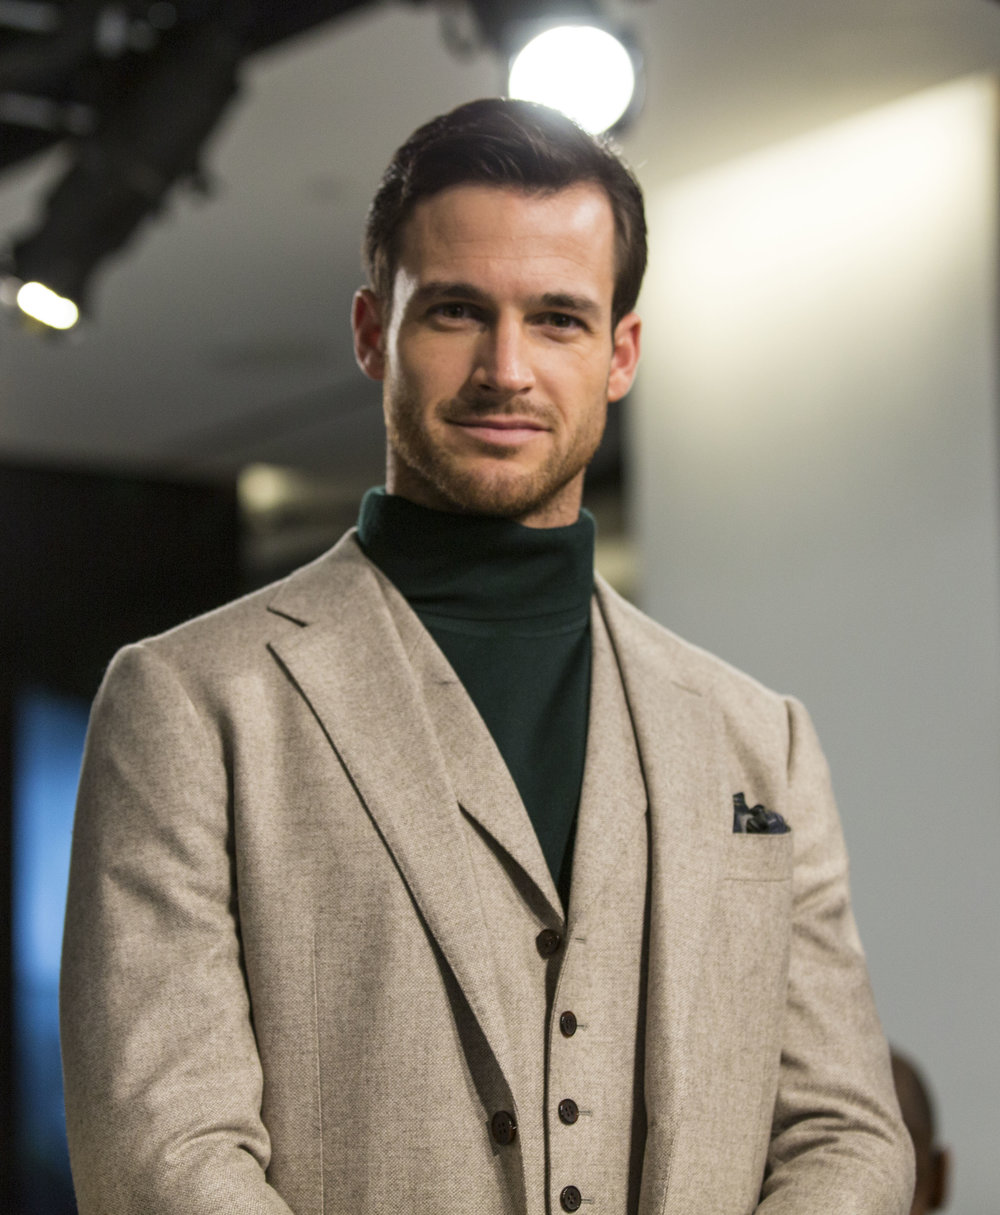 SUITSUPPLY-FALL -WINTER-NYFWM2018-MENS-COLLECTION- AW18-NYFWM-3.jpg